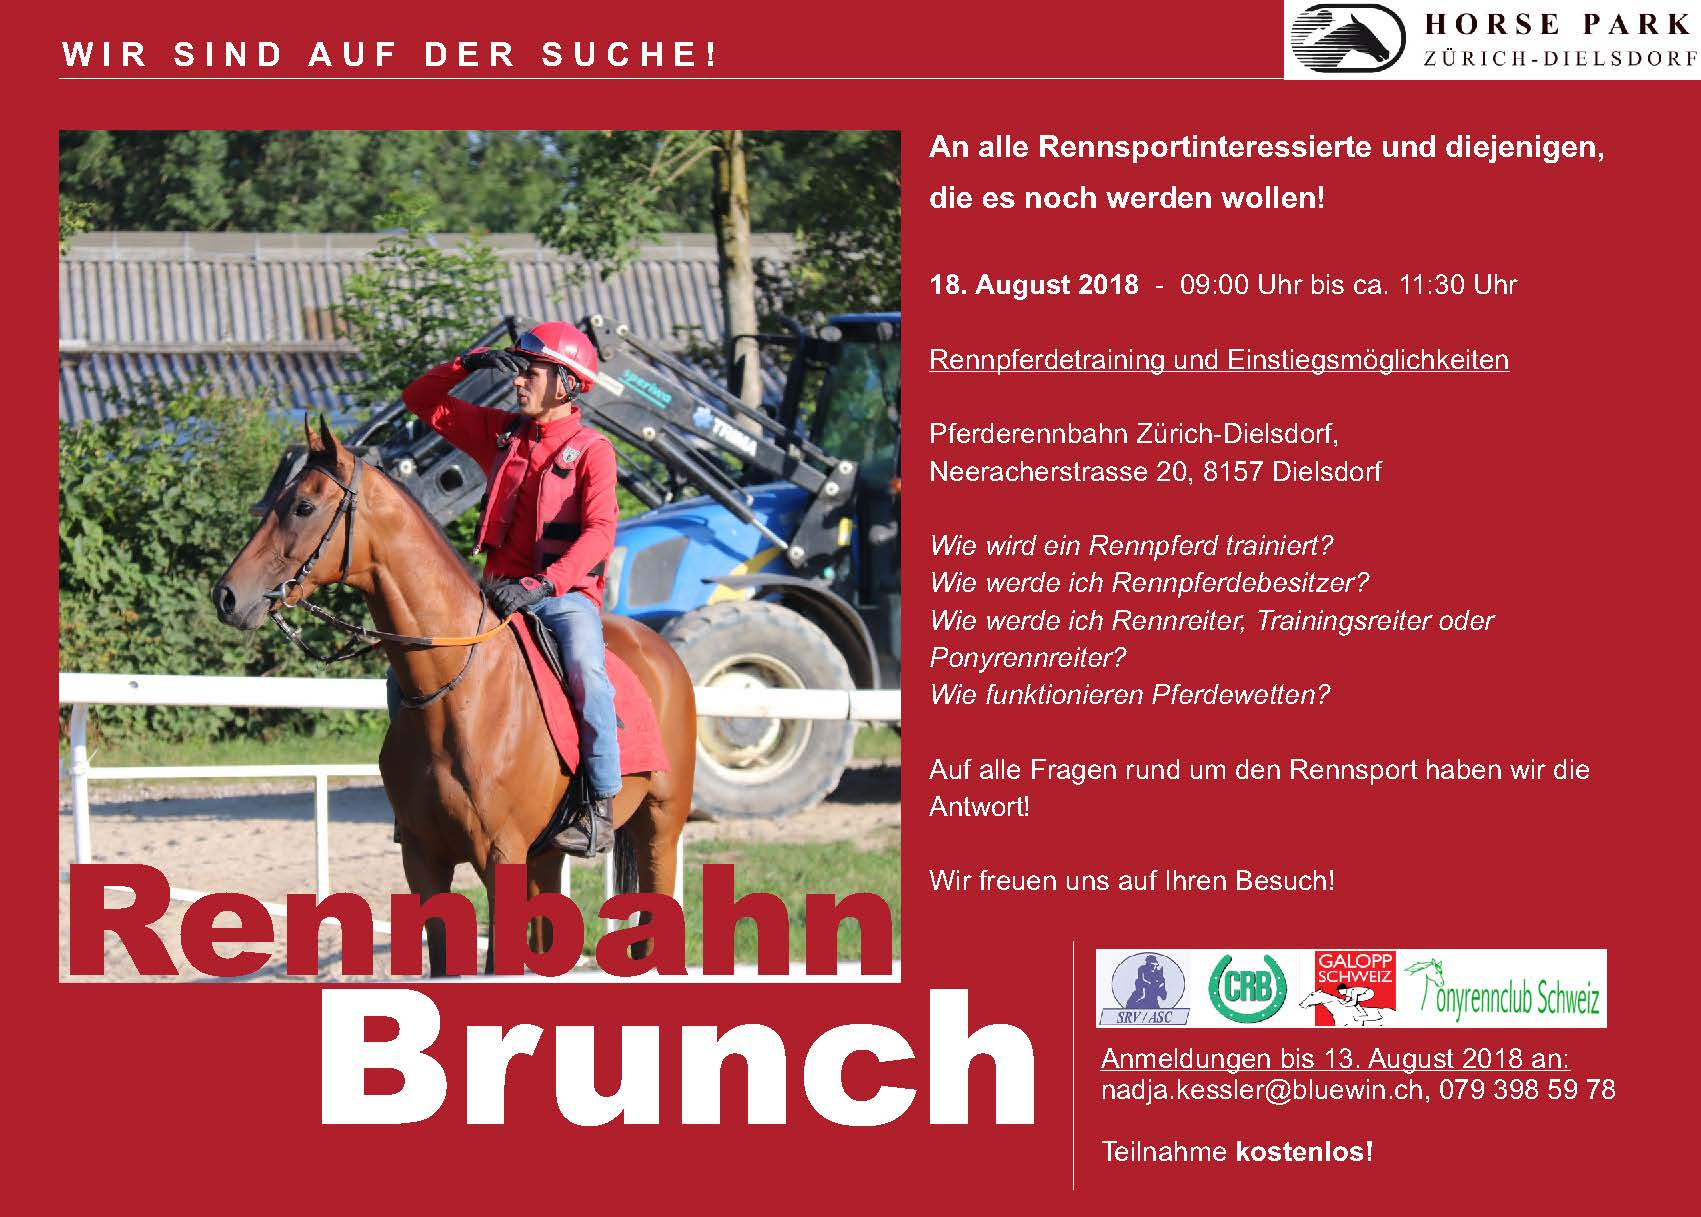 Rennbahn brunch